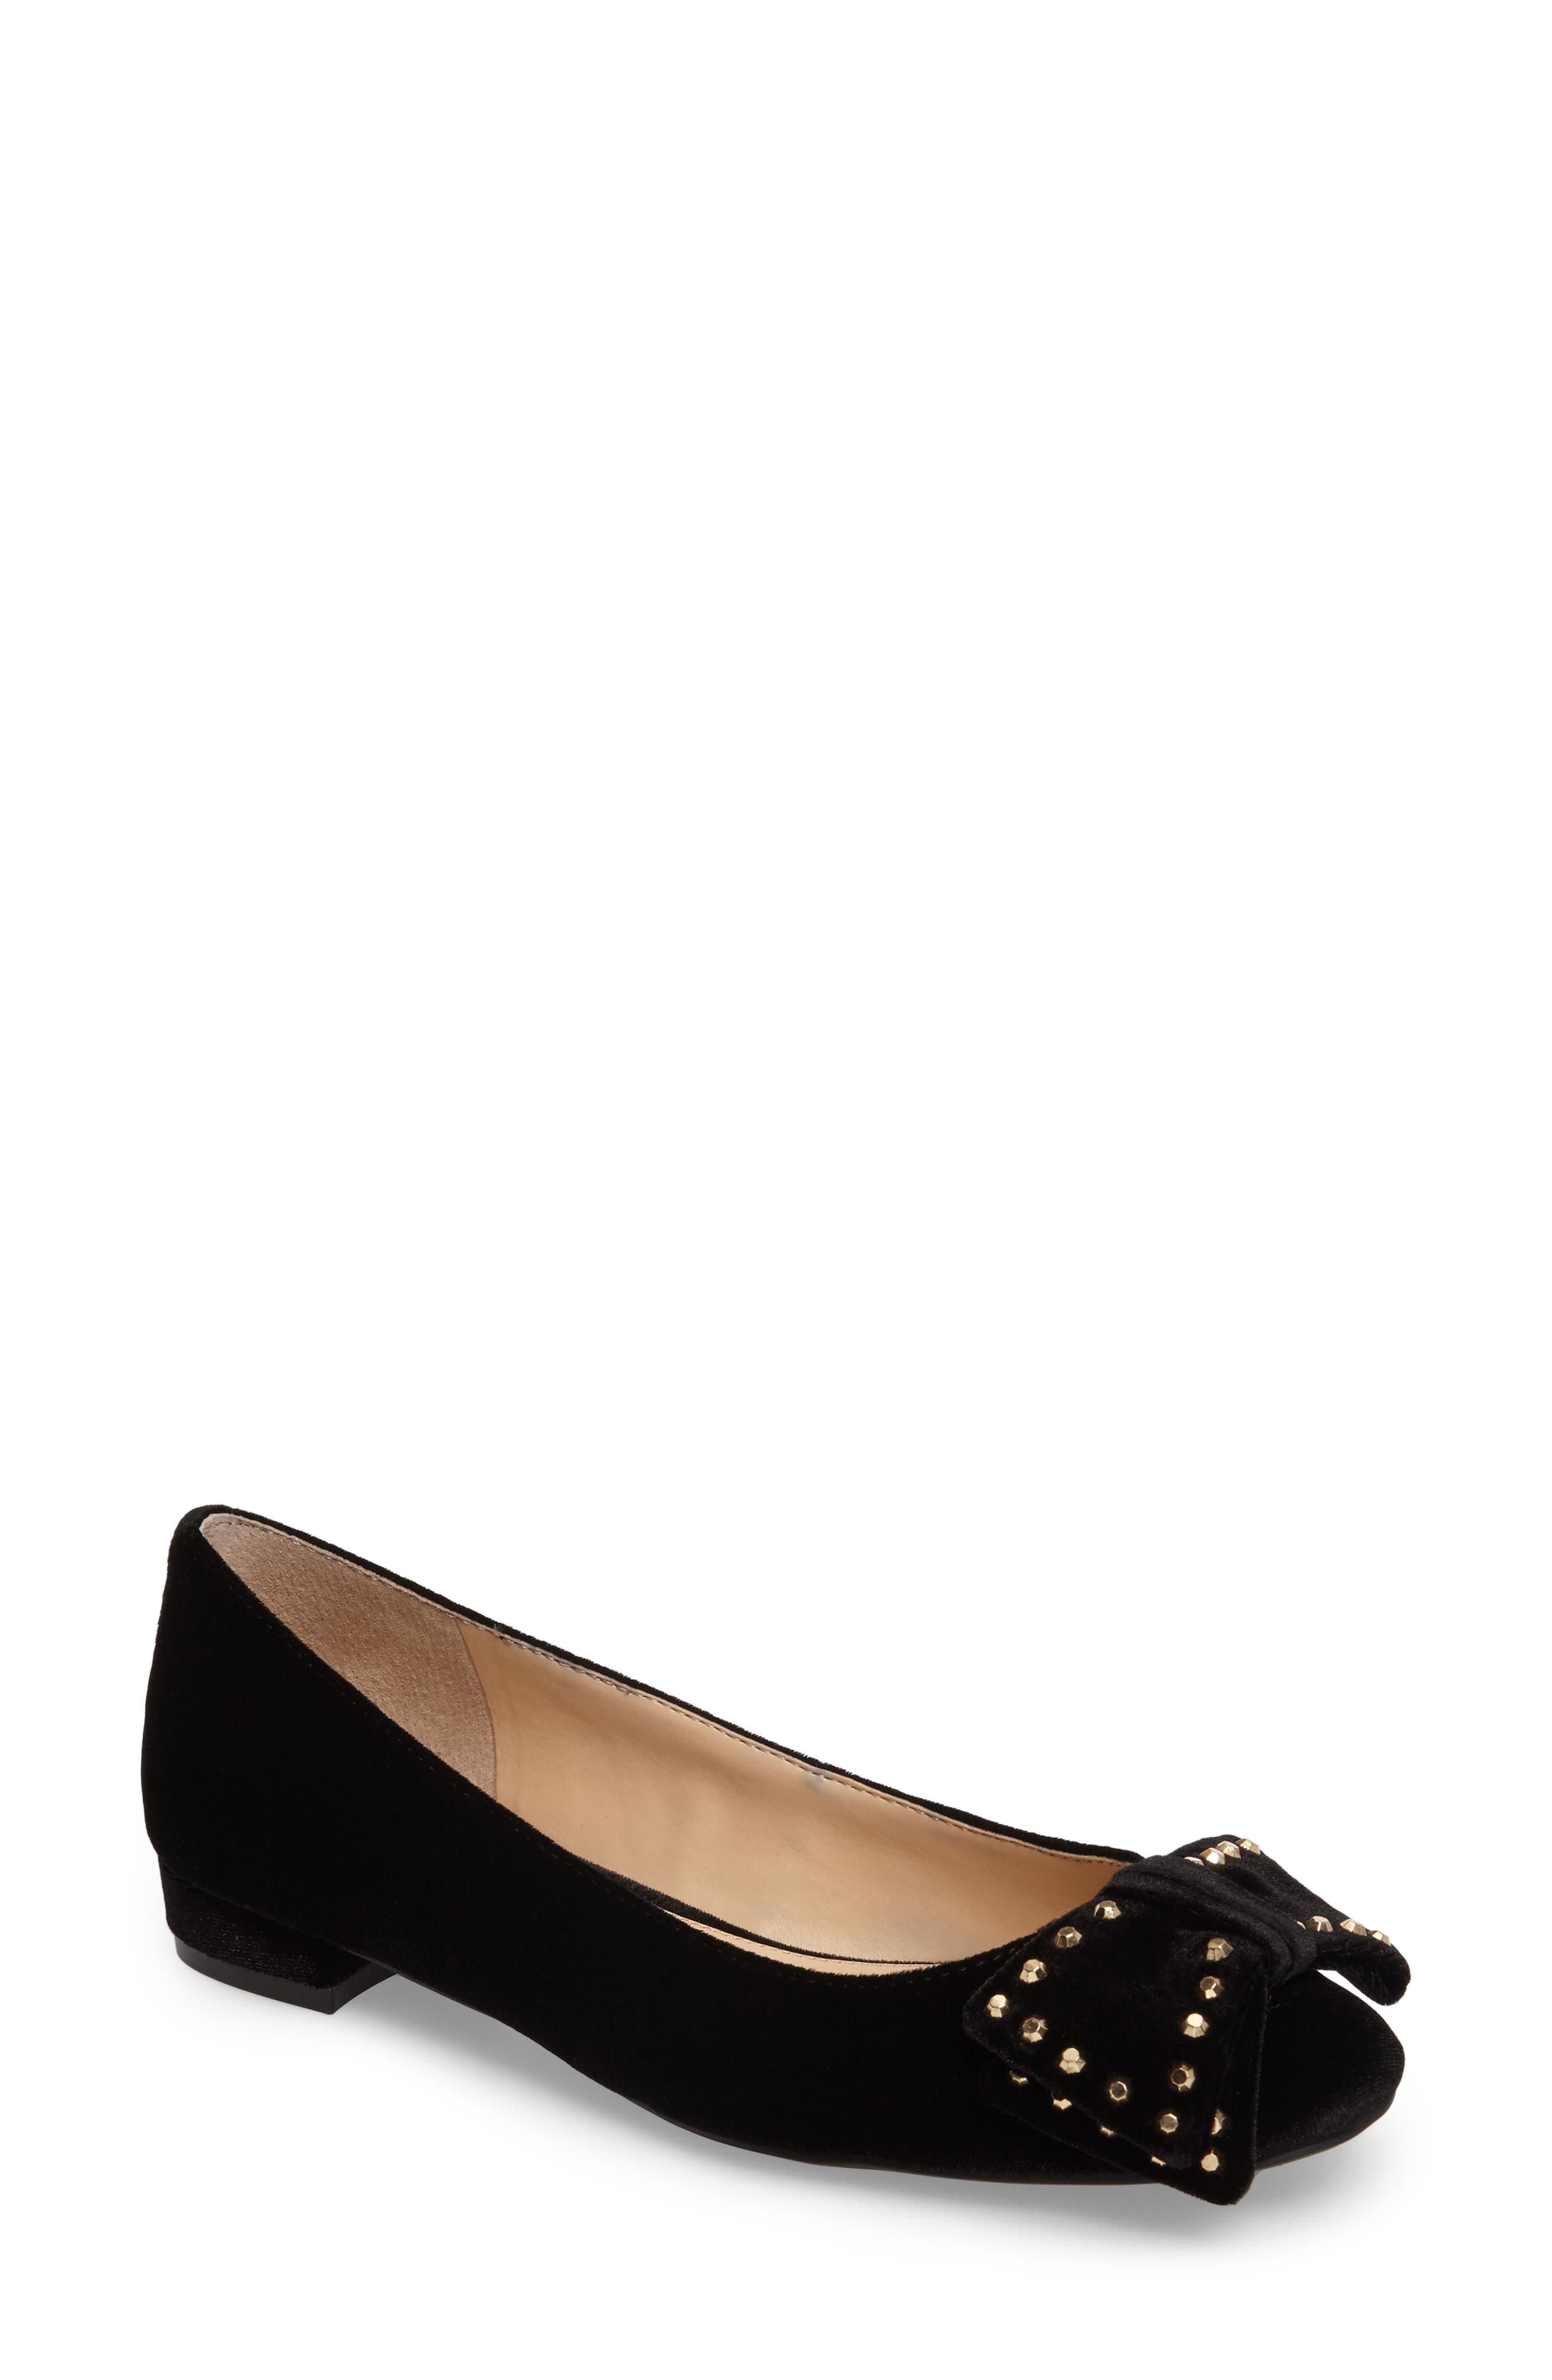 Alternate Image 1 Selected - Vince Camuto Annaley Flat (Women)